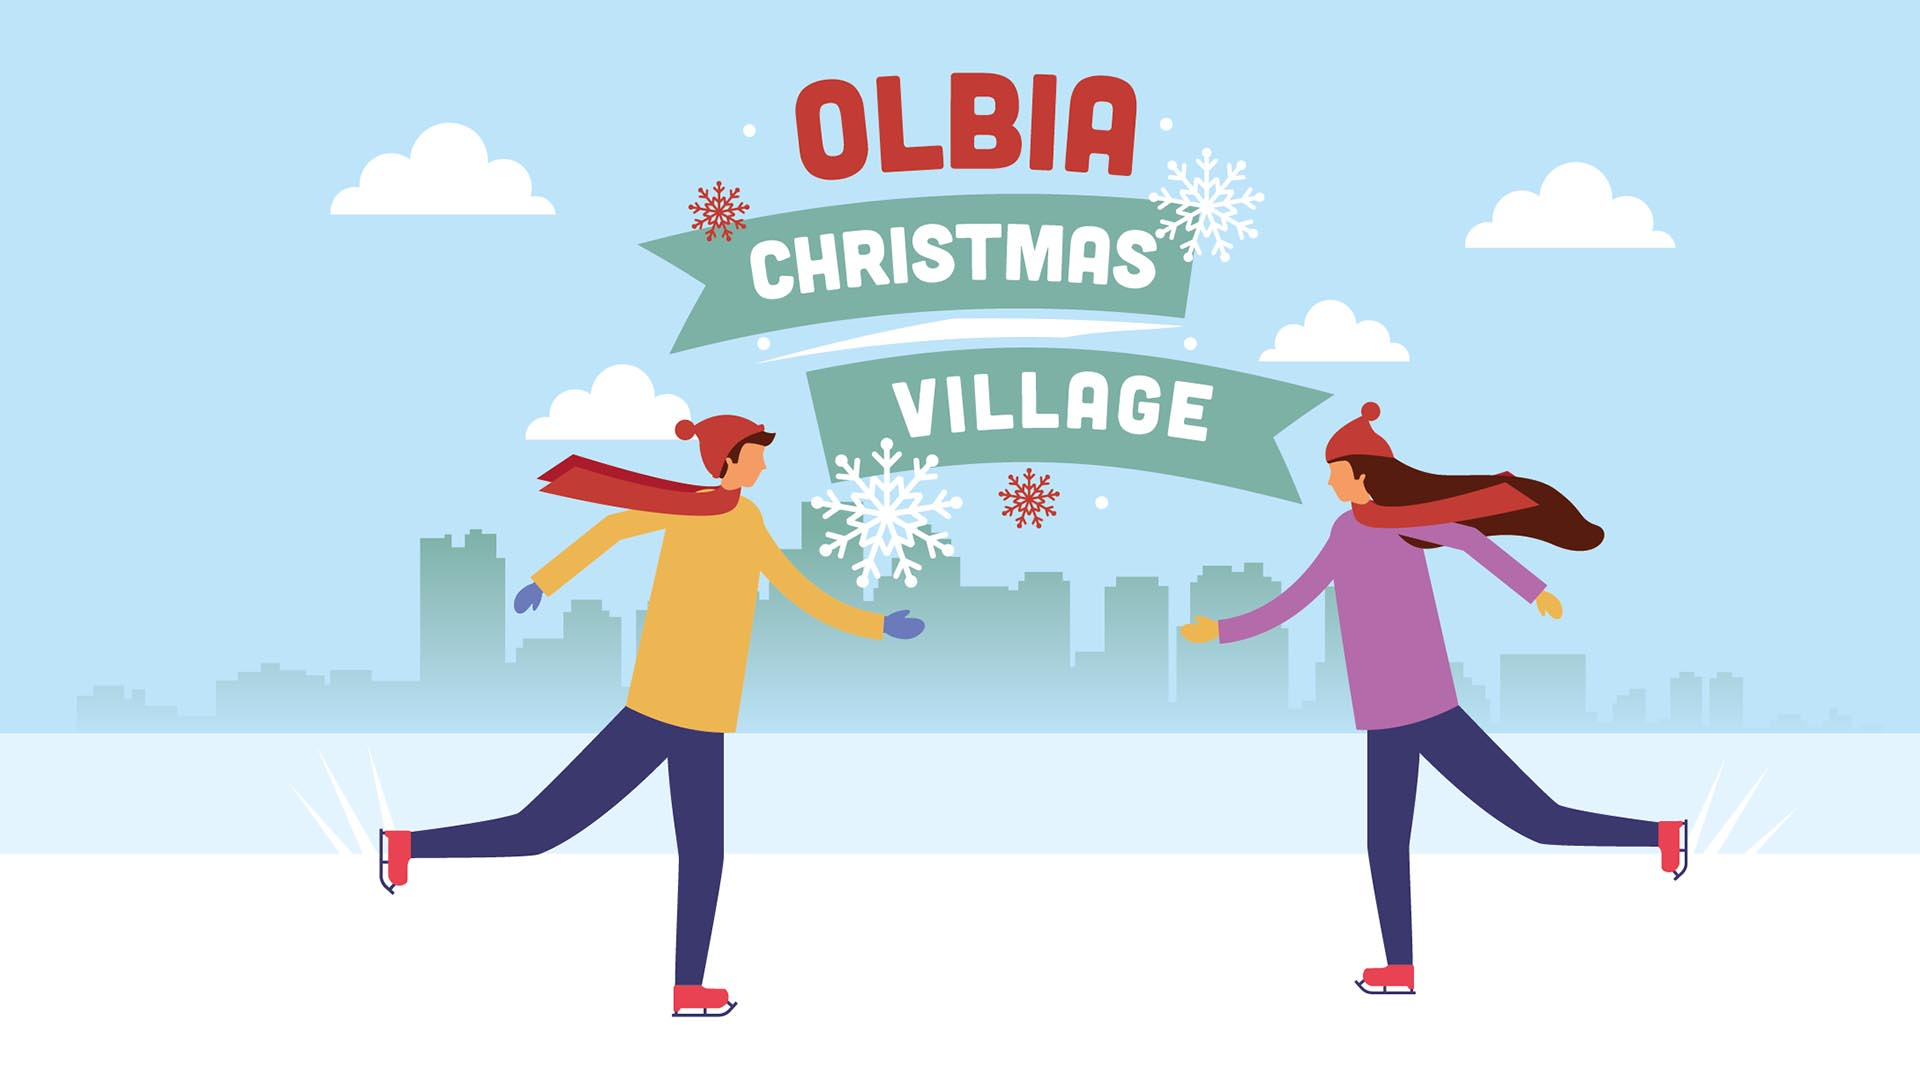 Olbia Christmas Village